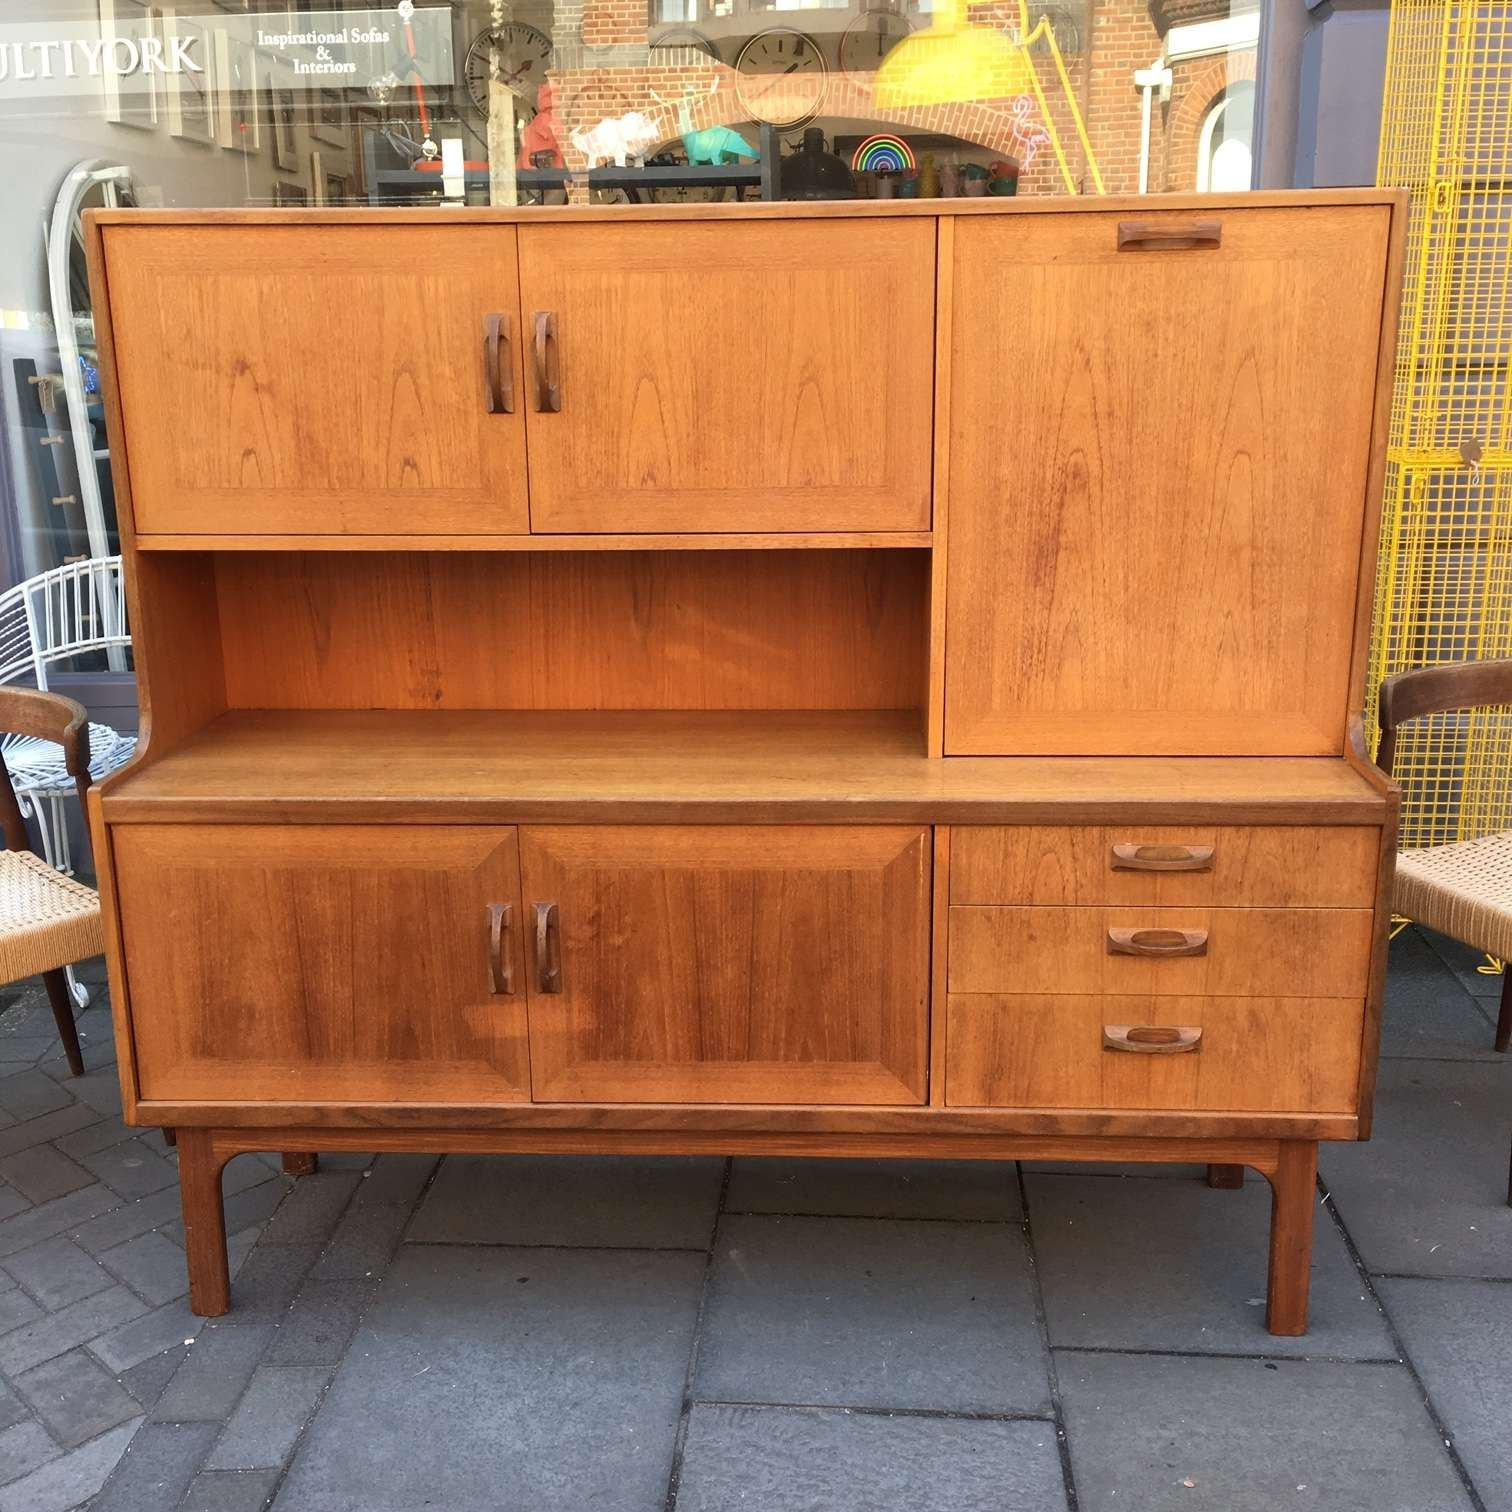 Retro G Plan Dresser – The Consortium, Vintage Furniture Throughout G Plan Sideboards (View 10 of 20)